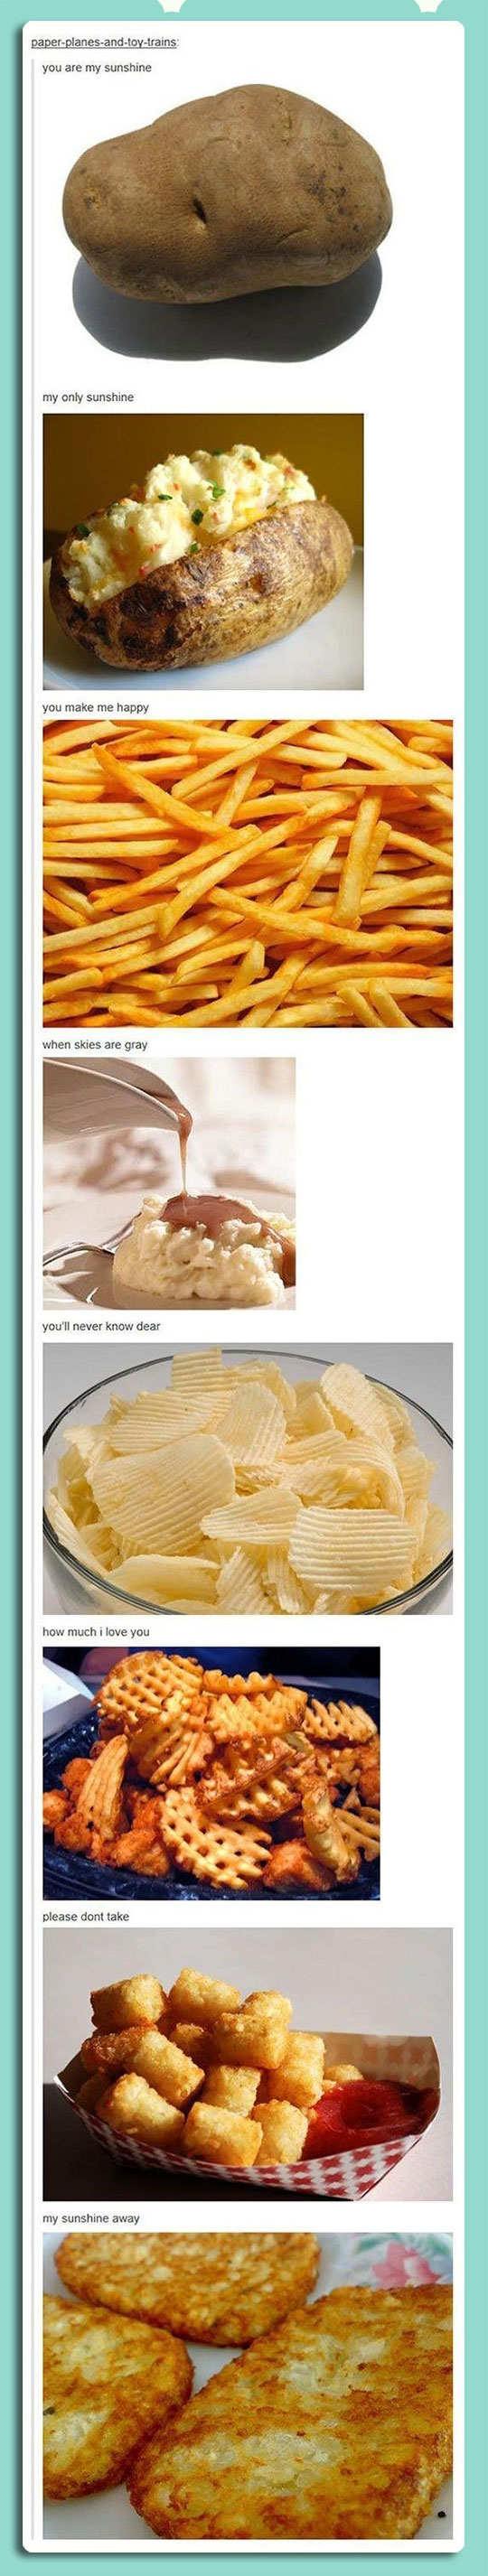 funny-potato-shape-food-fries